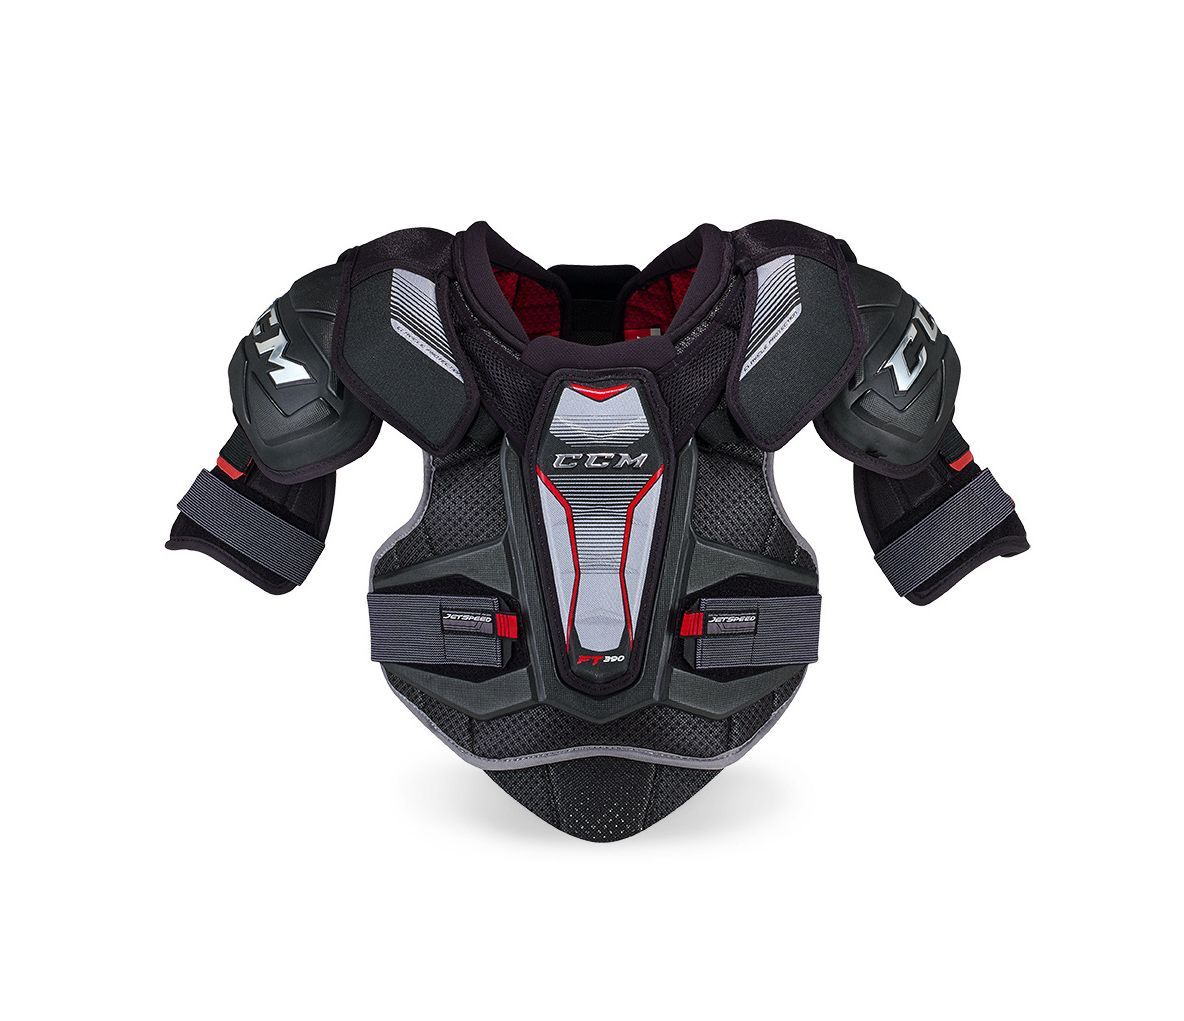 Ramena CCM Jetspeed FT390 JR, Junior, M